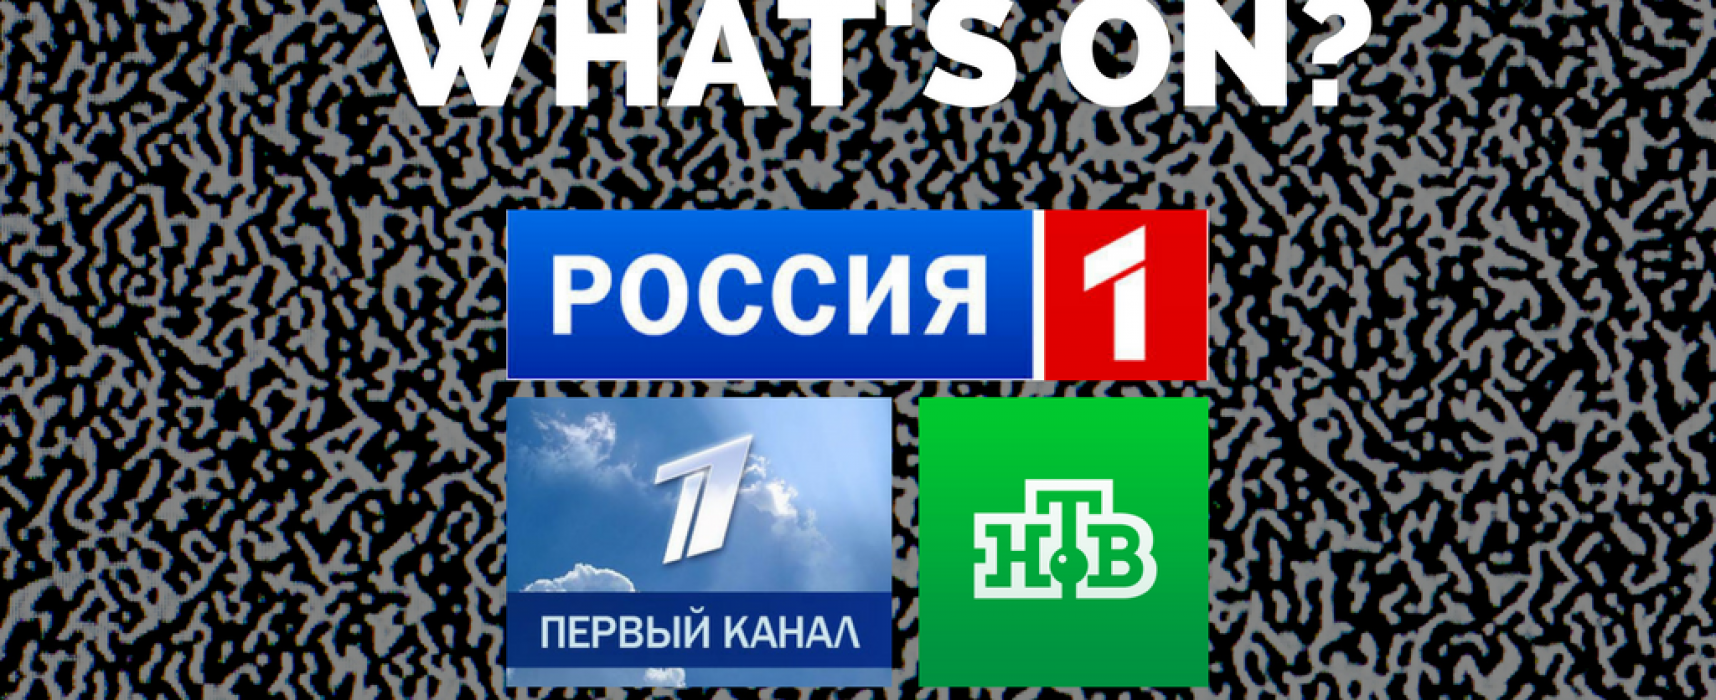 Russian state TV's targets last week: Ukraine, Poland and the US as antiheroes